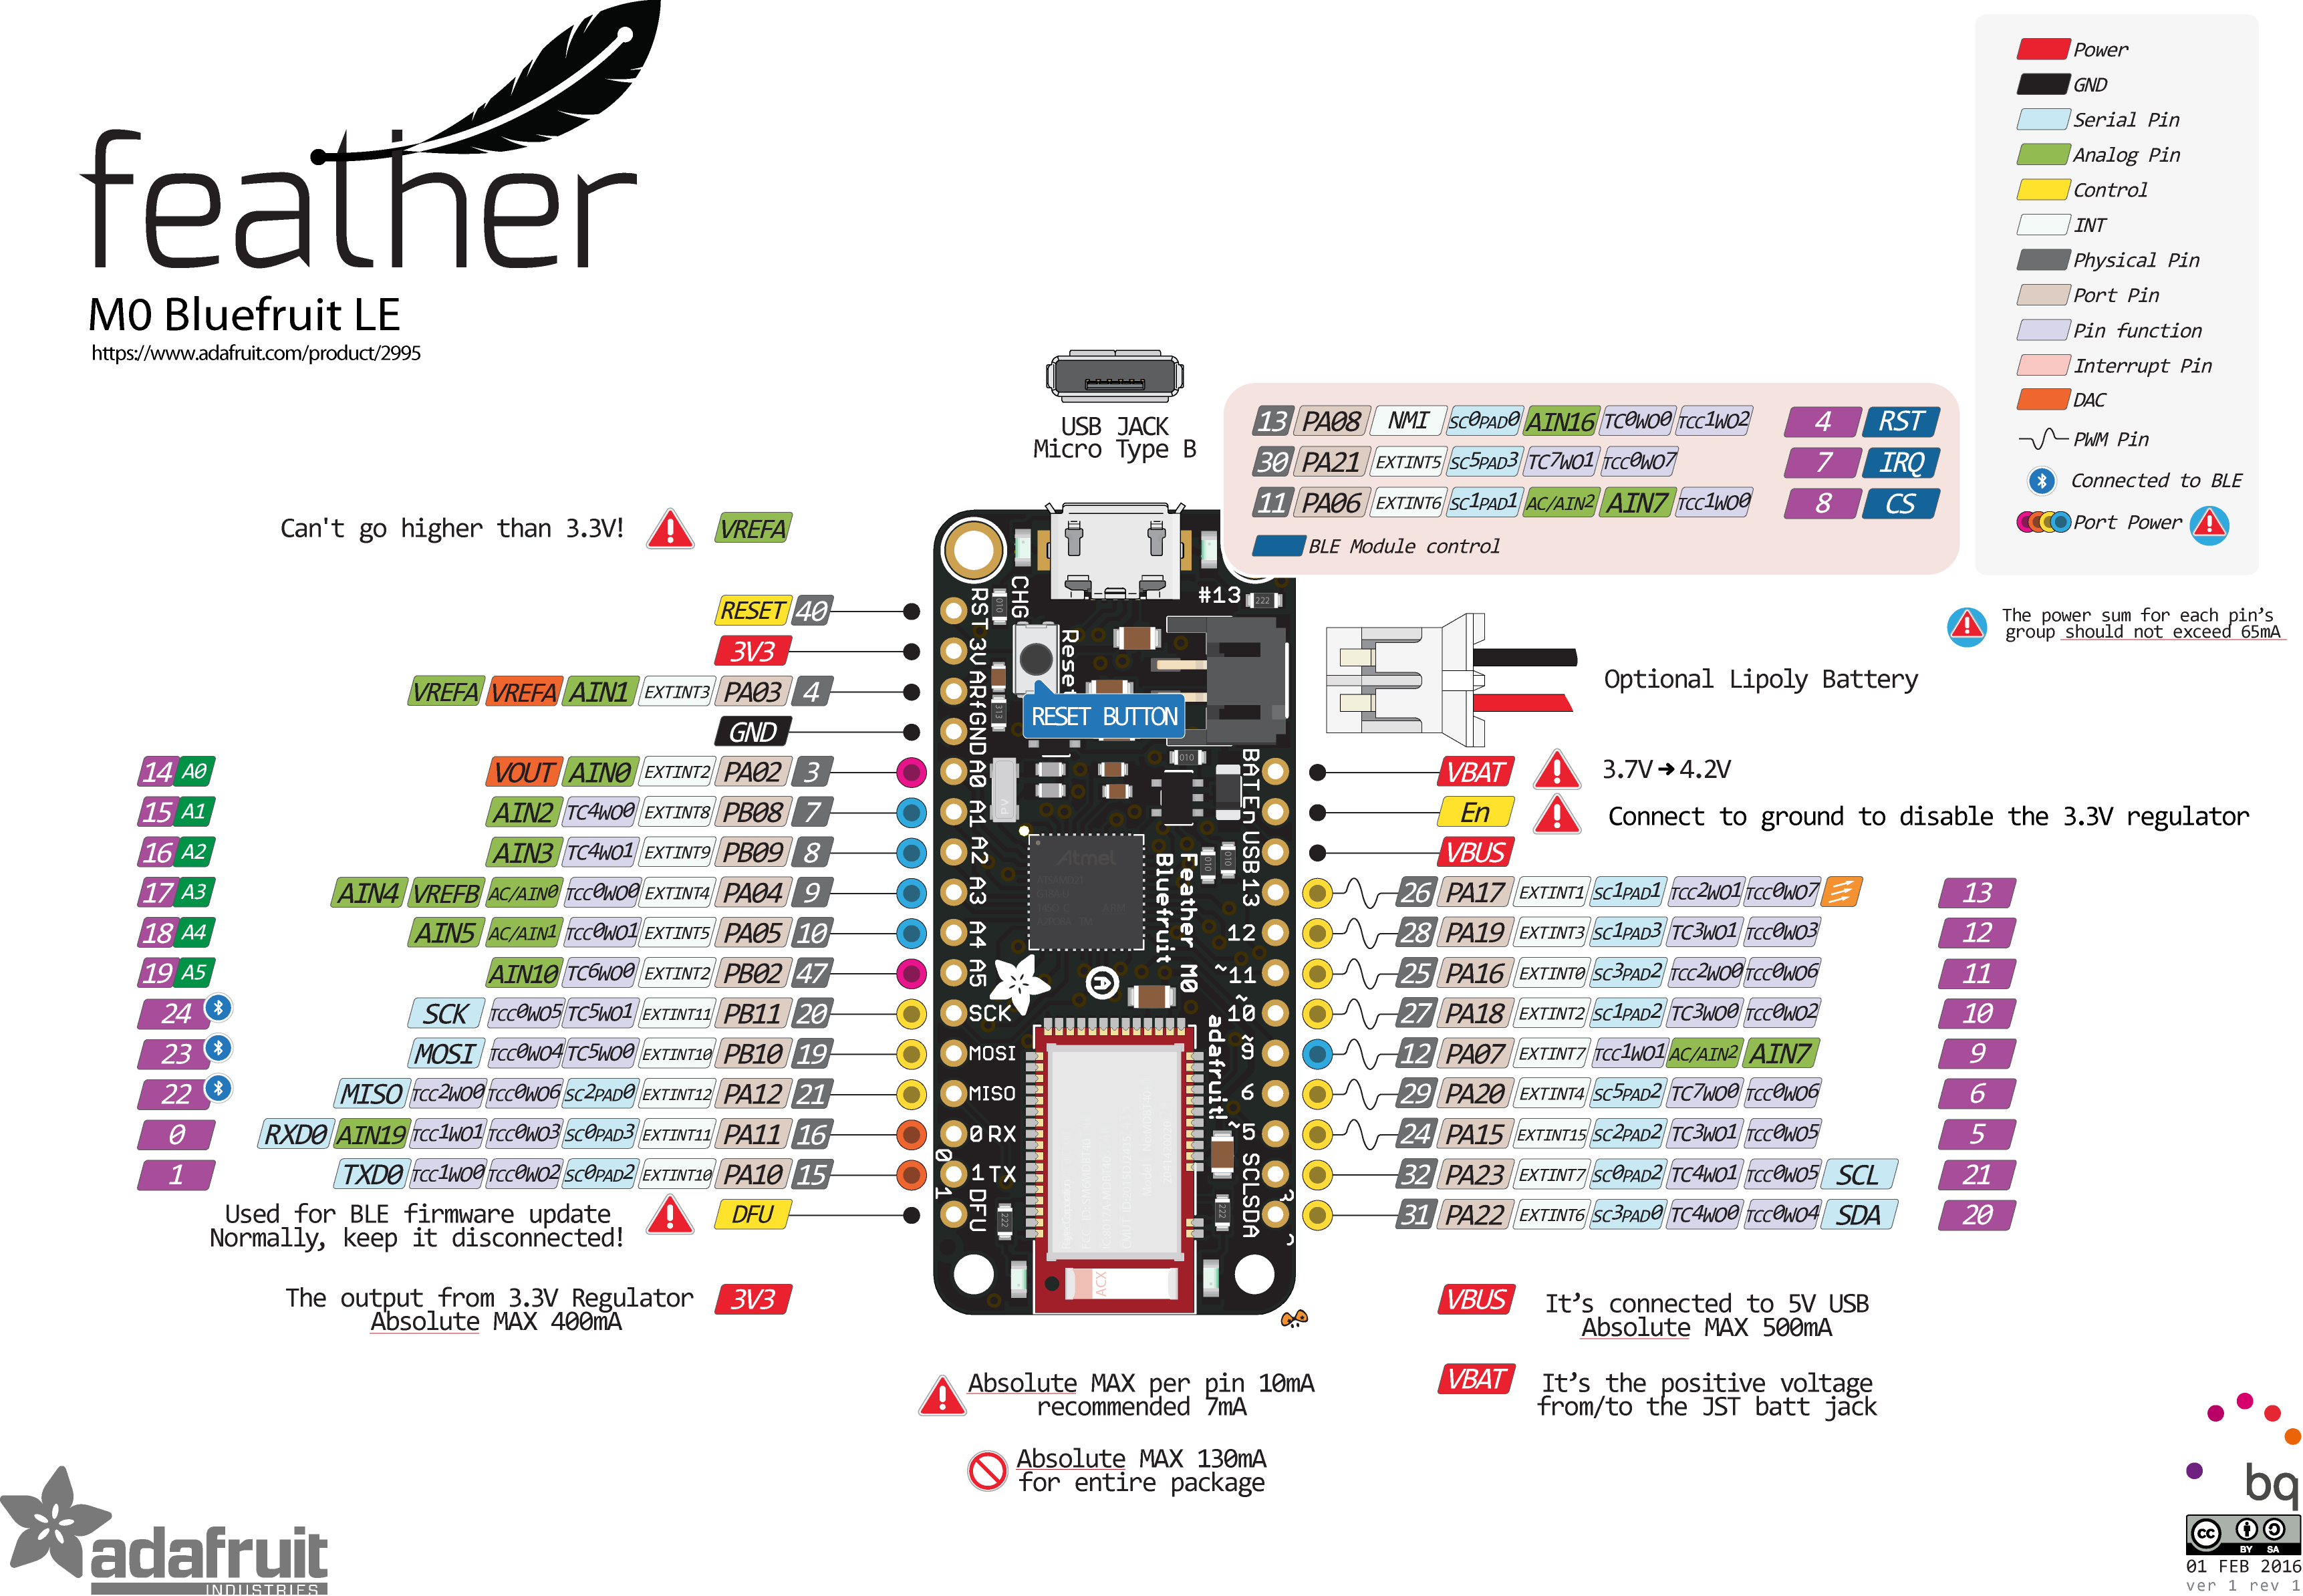 adafruit_products_2995_pinout_v1_1.png